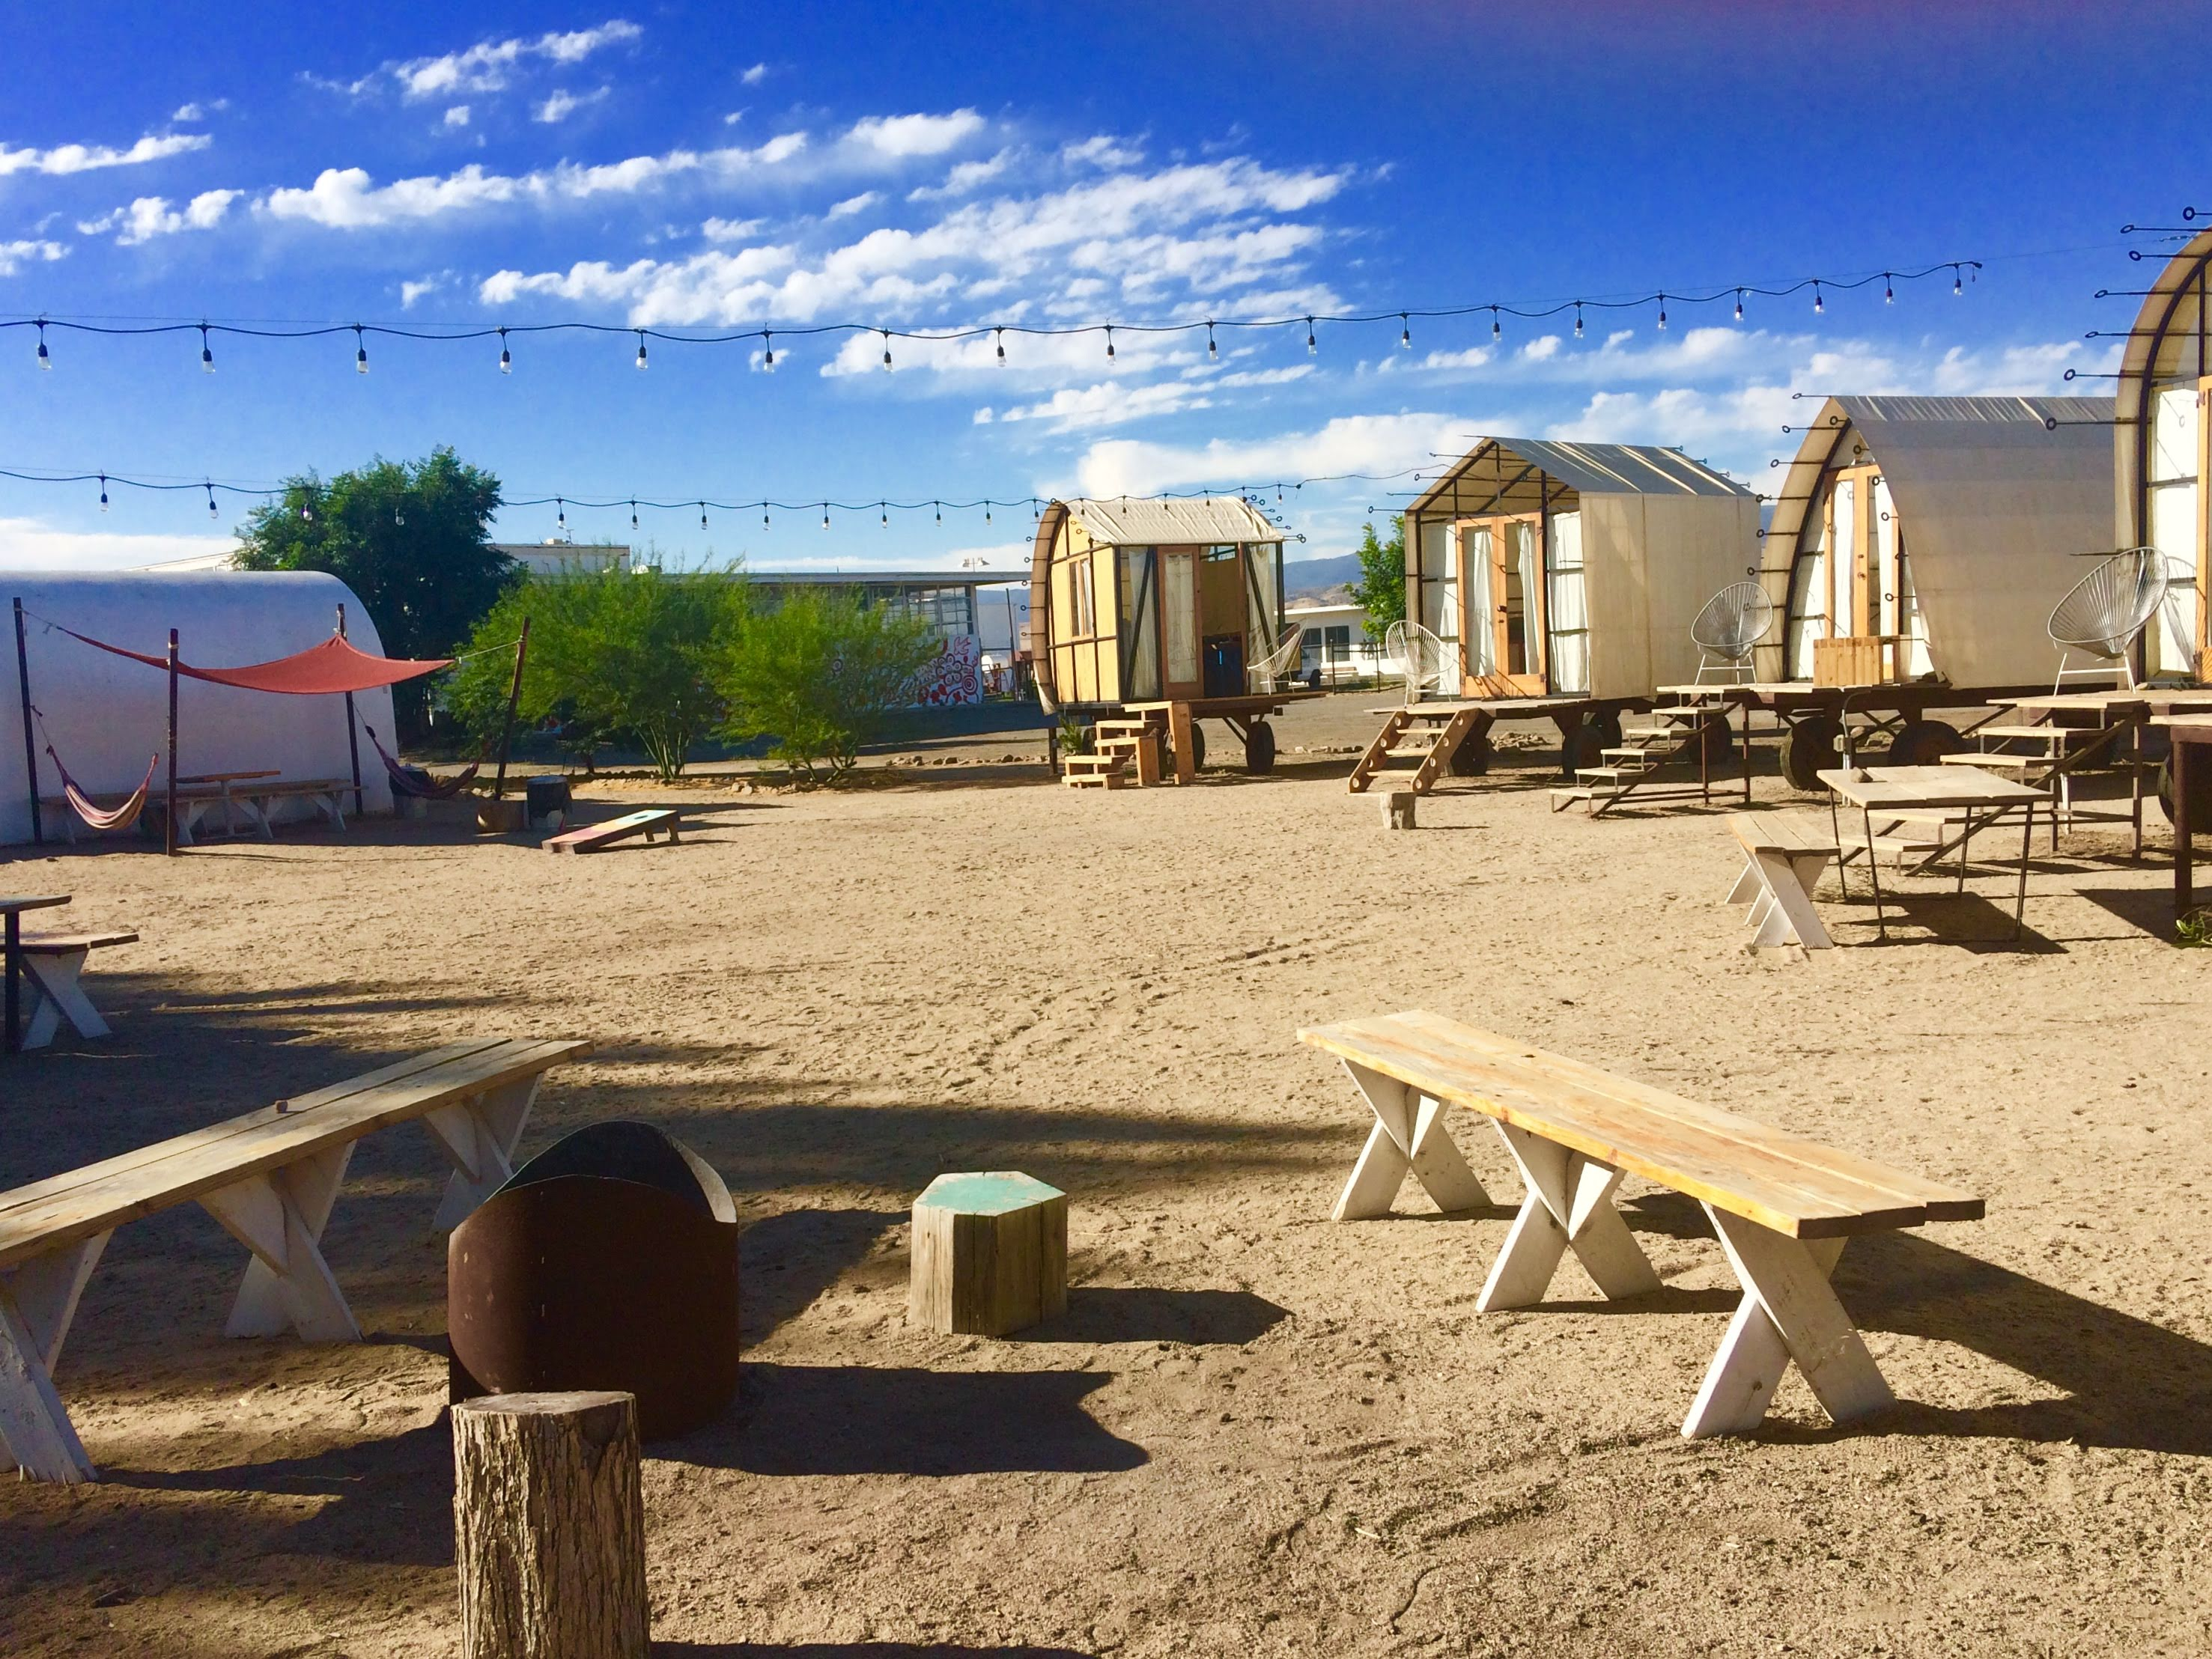 tiny travel chick unique things to do in southern california blue sky center fire pit